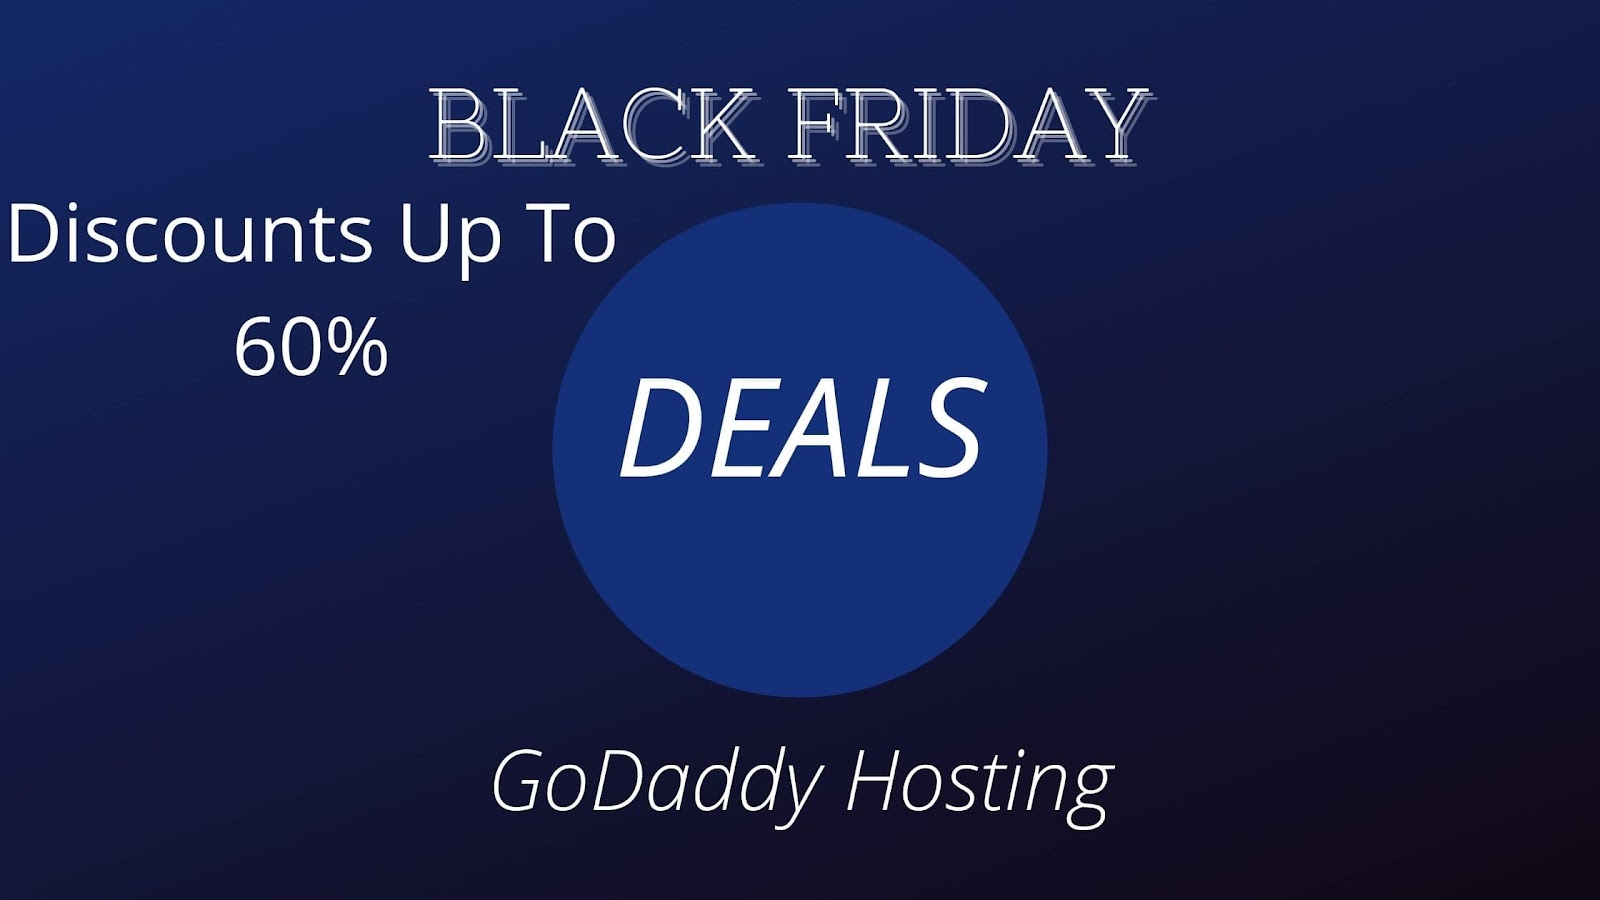 GoDaddy: Discounts Up To 60%